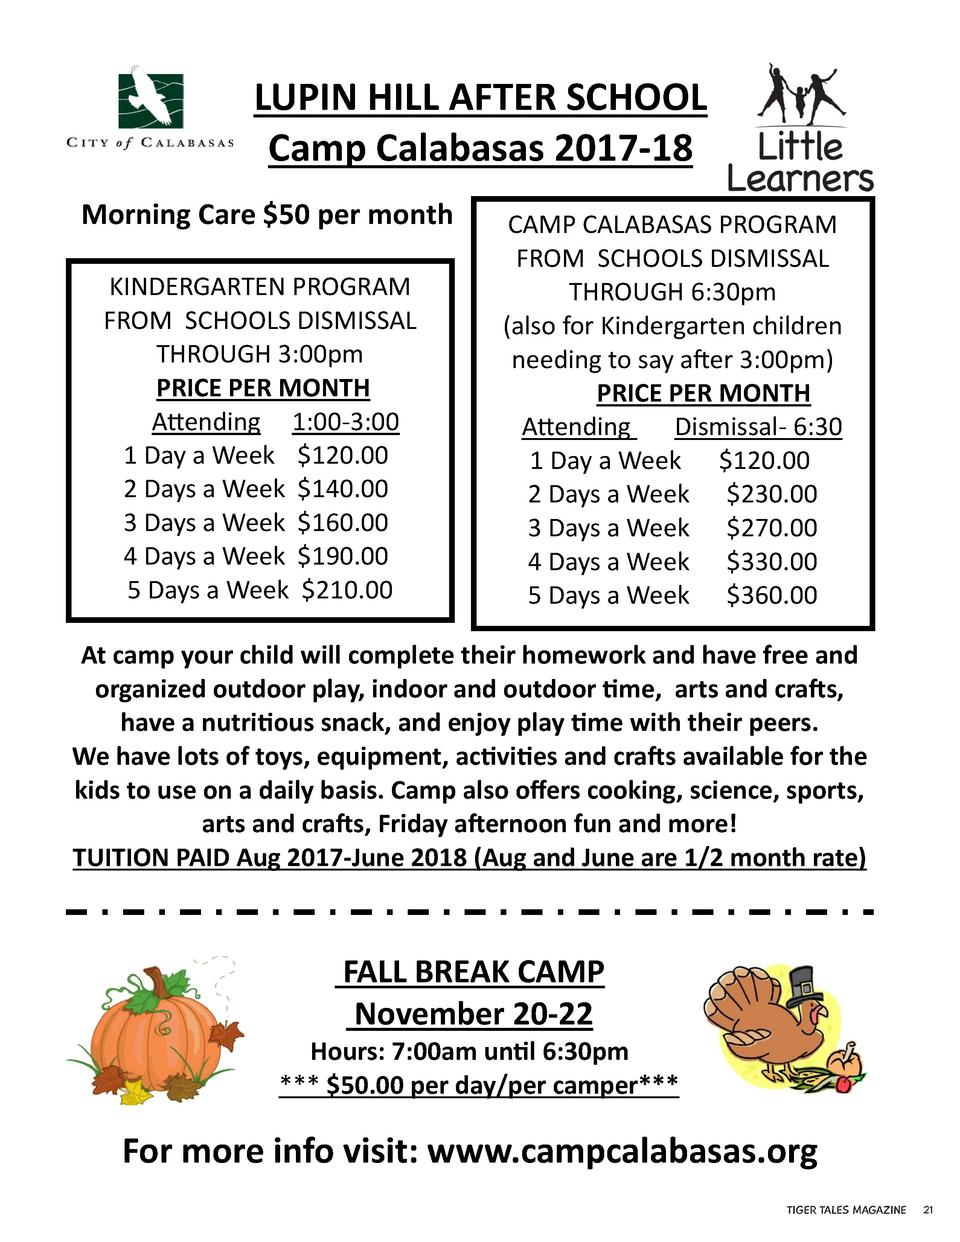 LUPIN HILL AFTER SCHOOL Camp Calabasas 2017-18 Morning Care  50 per month KINDERGARTEN PROGRAM FROM SCHOOLS DISMISSAL THRO...